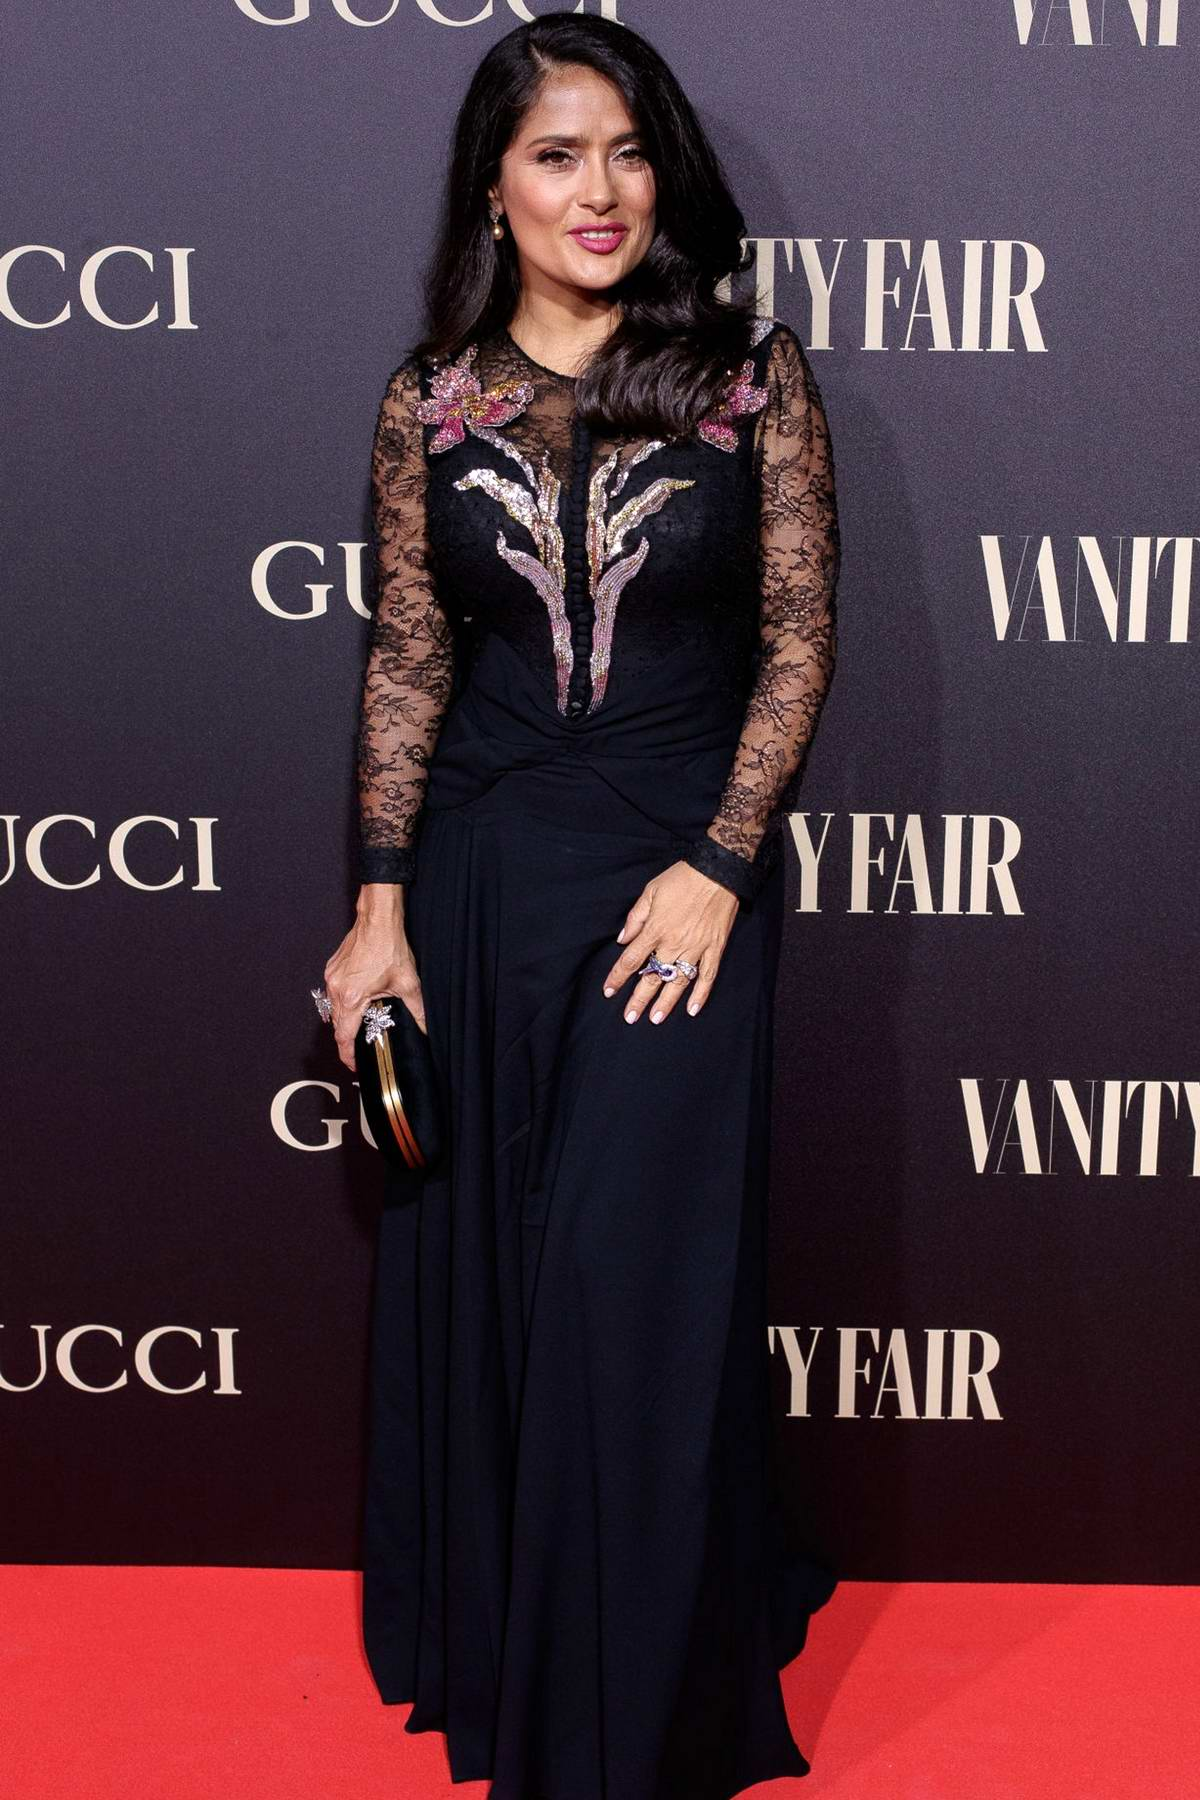 Salma Hayek attends 'Vanity Fair Personality Of The Year' Awards in Madrid, Spain